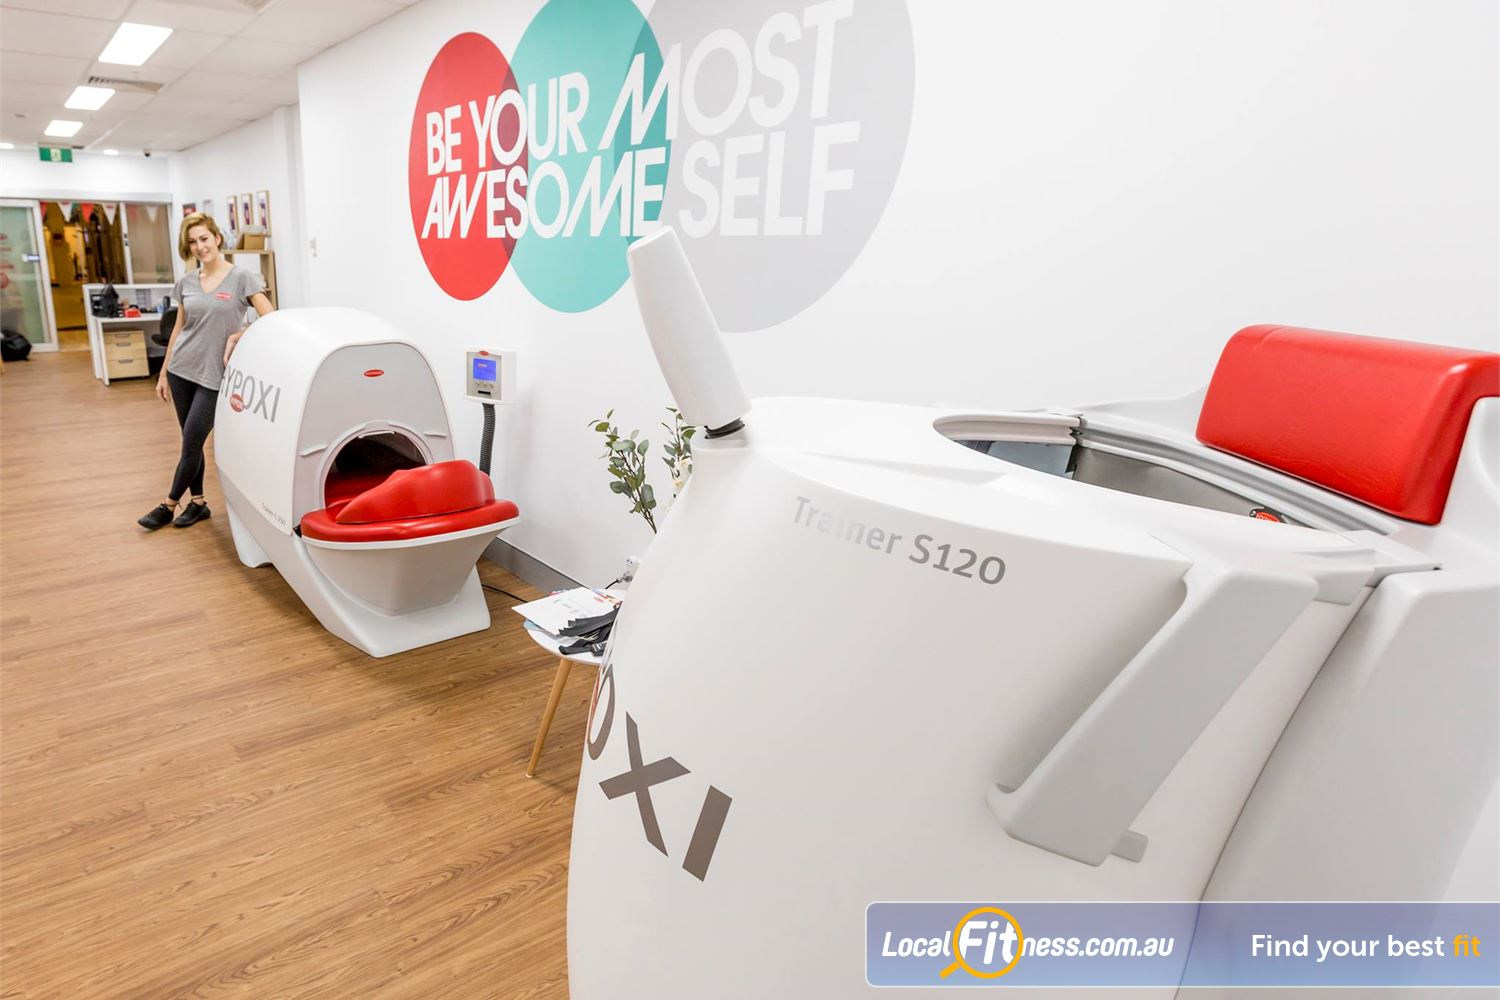 HYPOXI Weight Loss Near Manly Vale Help your body work smarter, not harder in our HYPOXI Balgowlah weight loss studio.